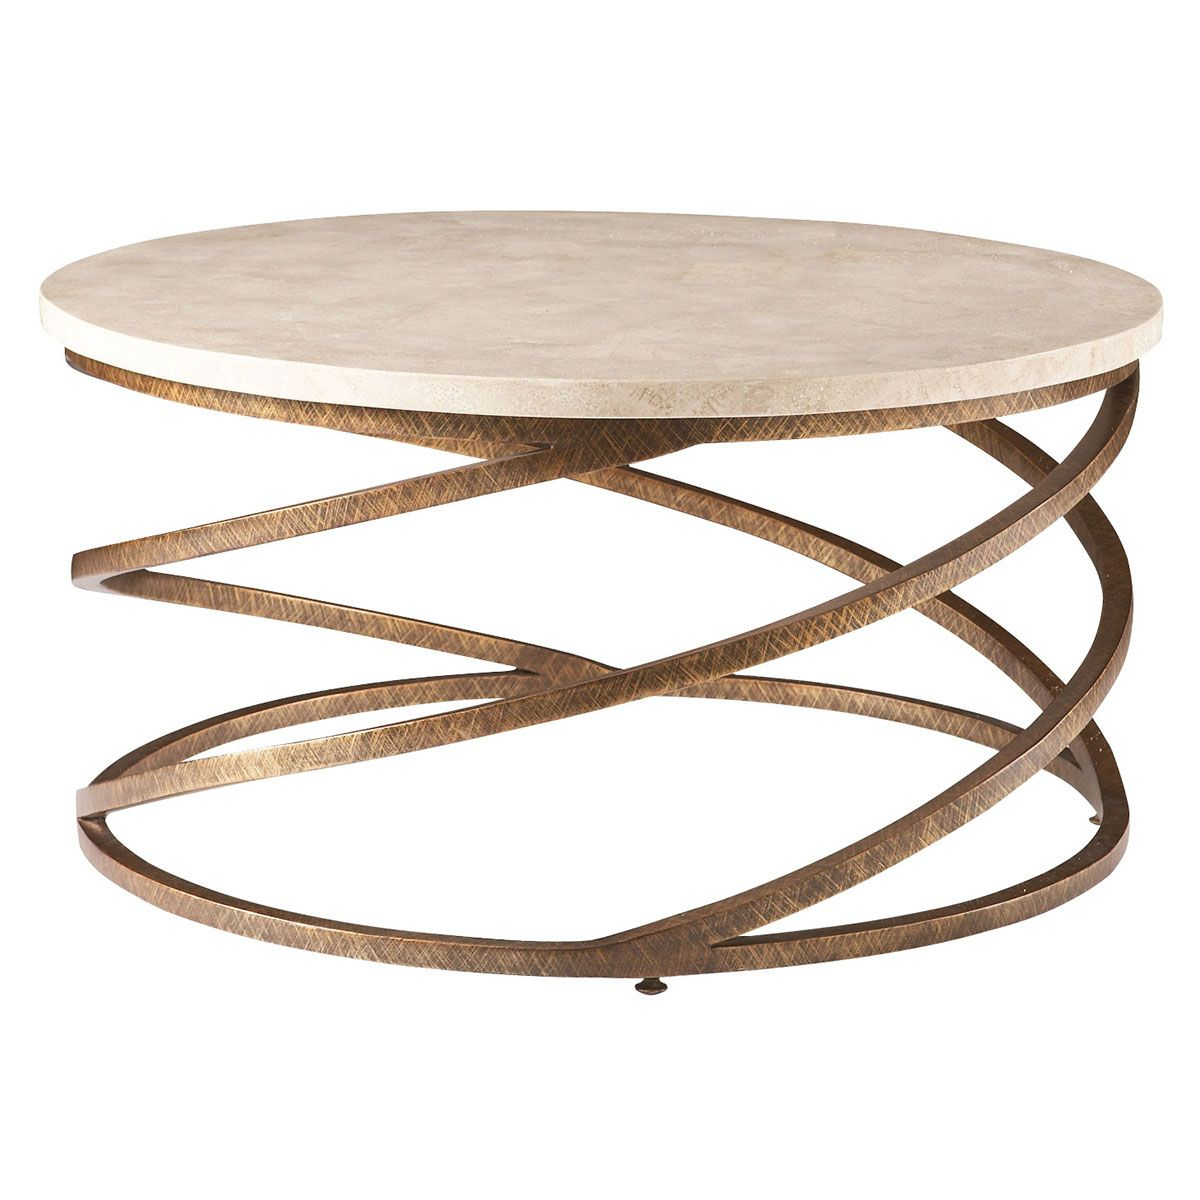 Cth Sherrill Occasional Round Tail Table M13 40